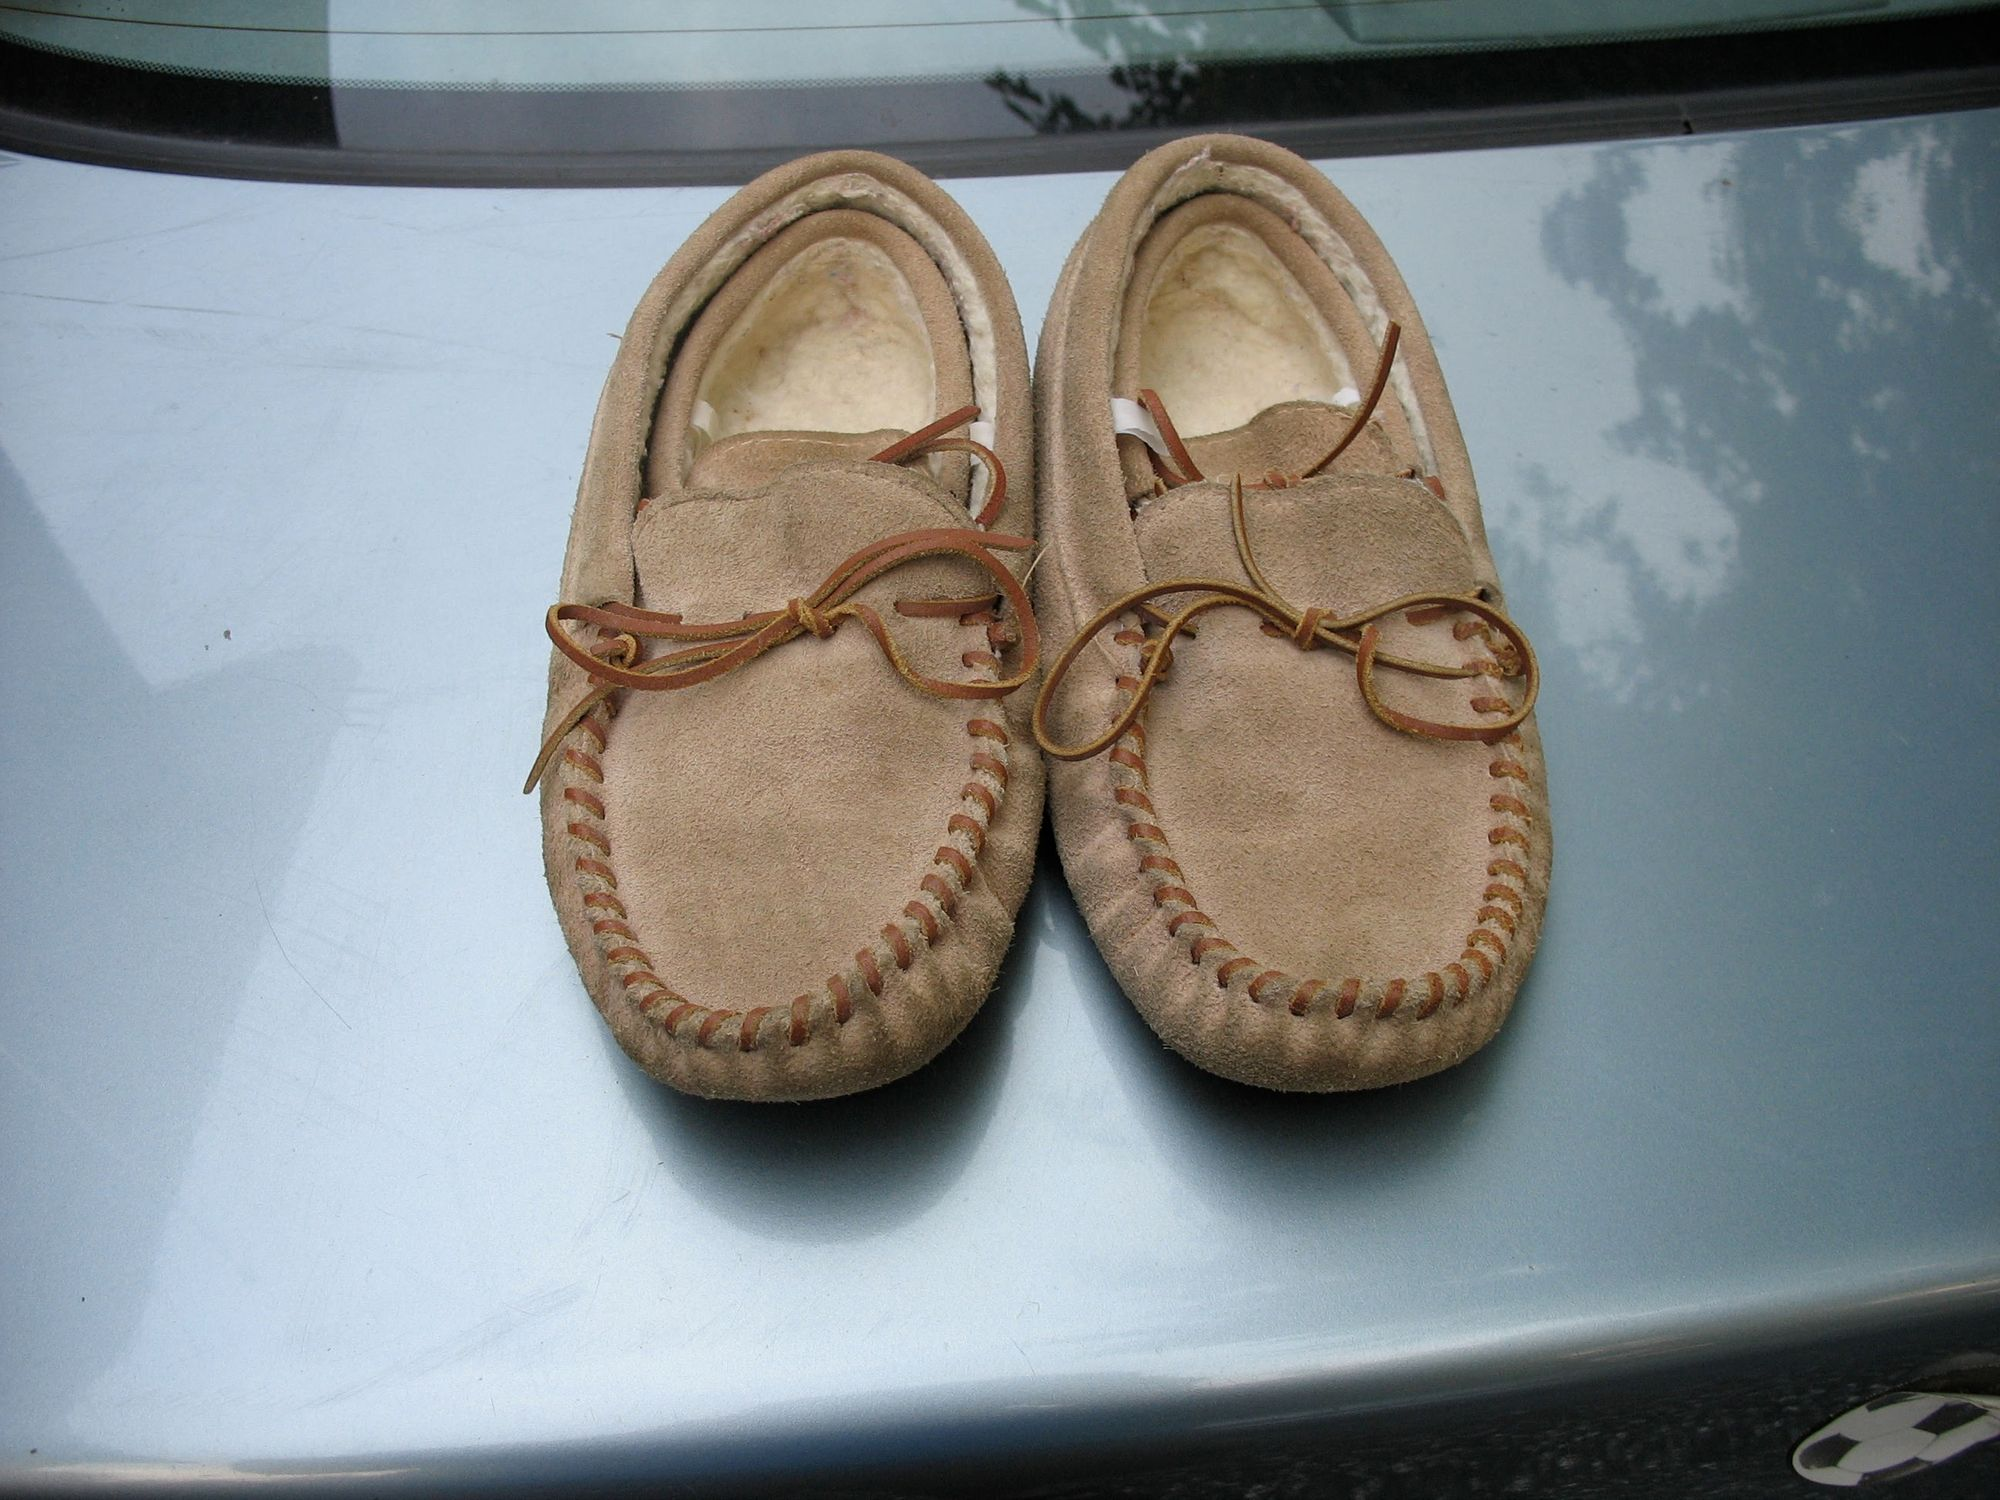 Spiritual Slippers for Father's Day